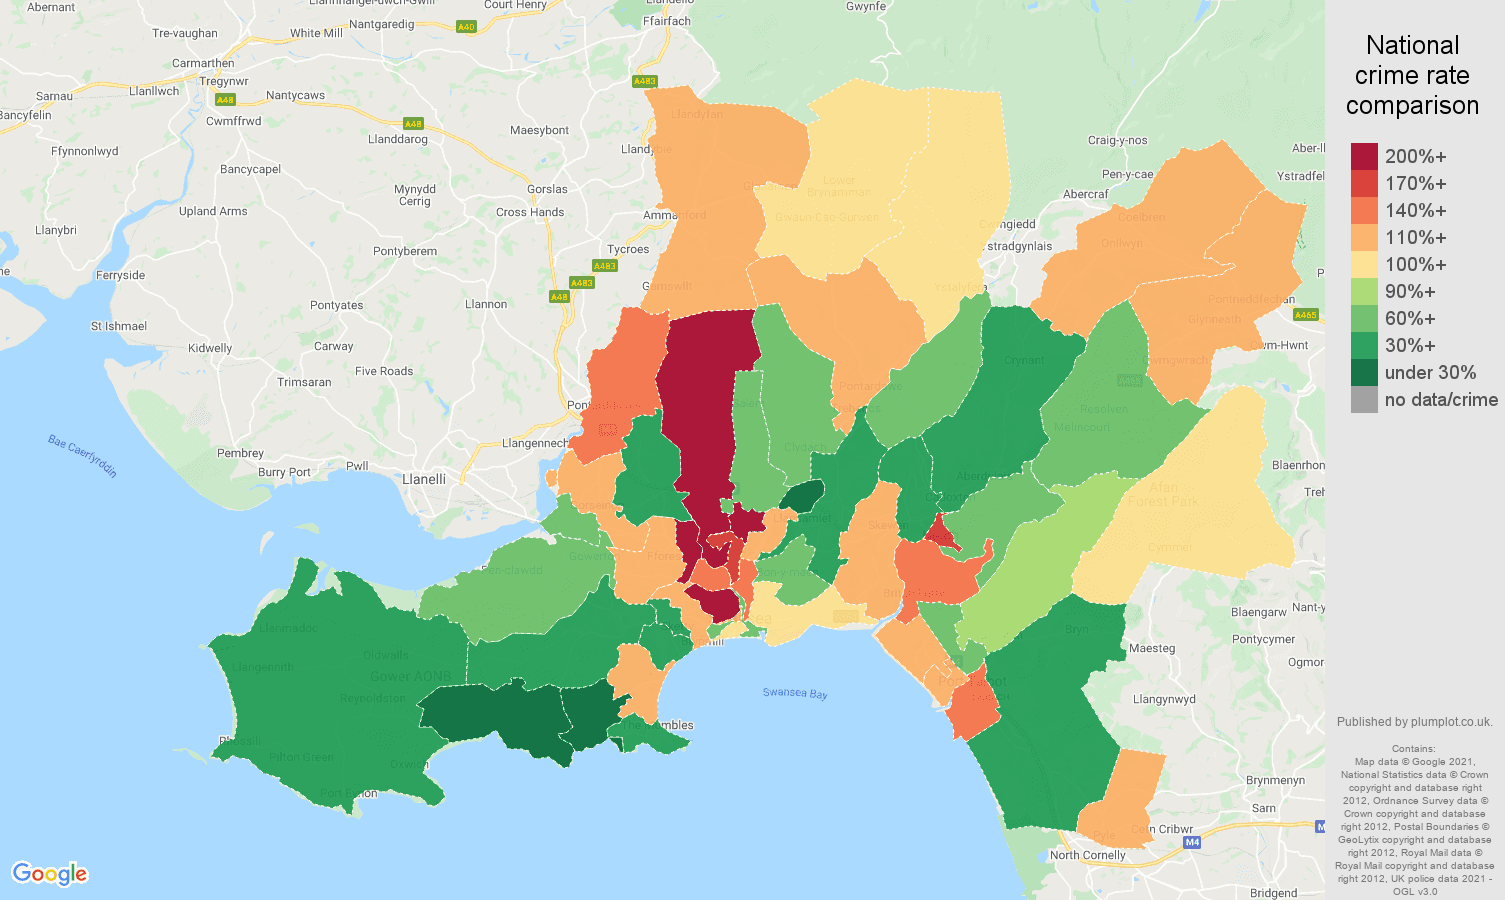 West Glamorgan criminal damage and arson crime rate comparison map